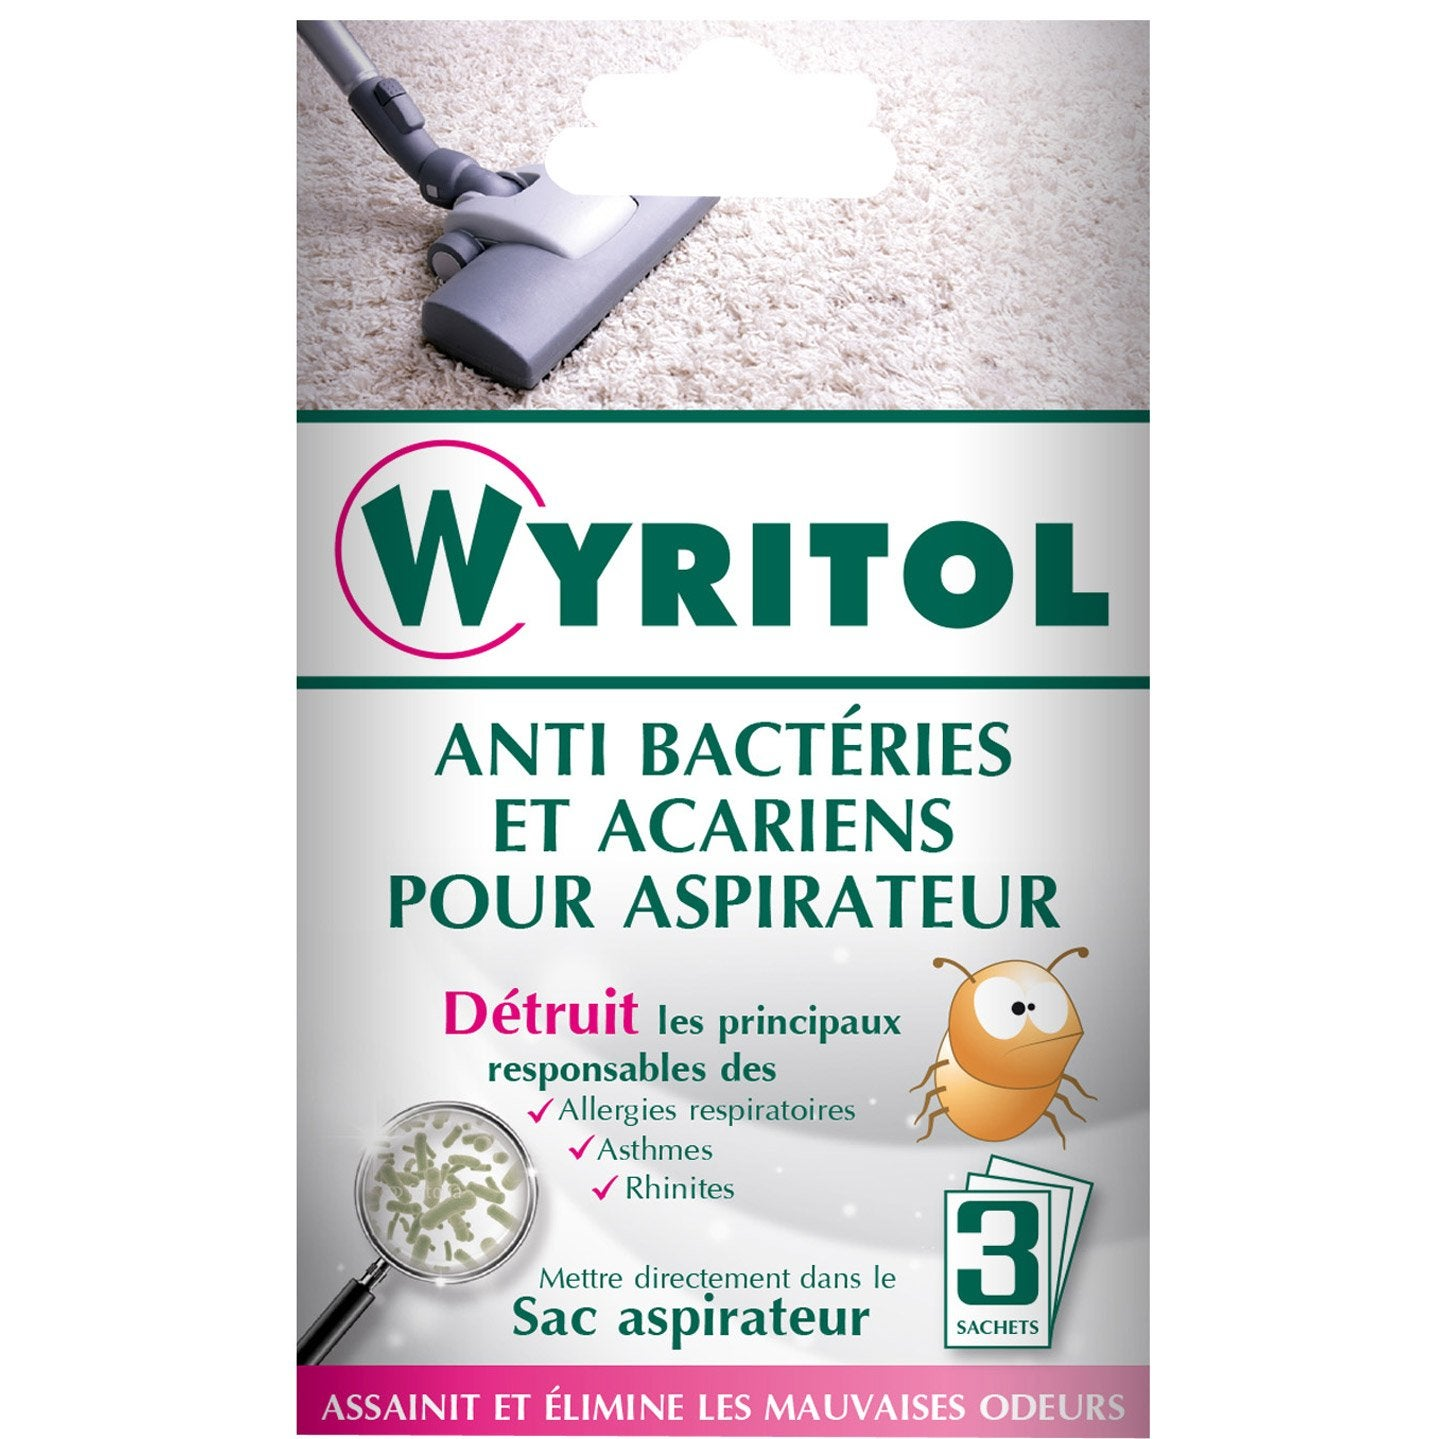 d sinfectant anti bact rien aspirateur wyritol 3x10g leroy merlin. Black Bedroom Furniture Sets. Home Design Ideas